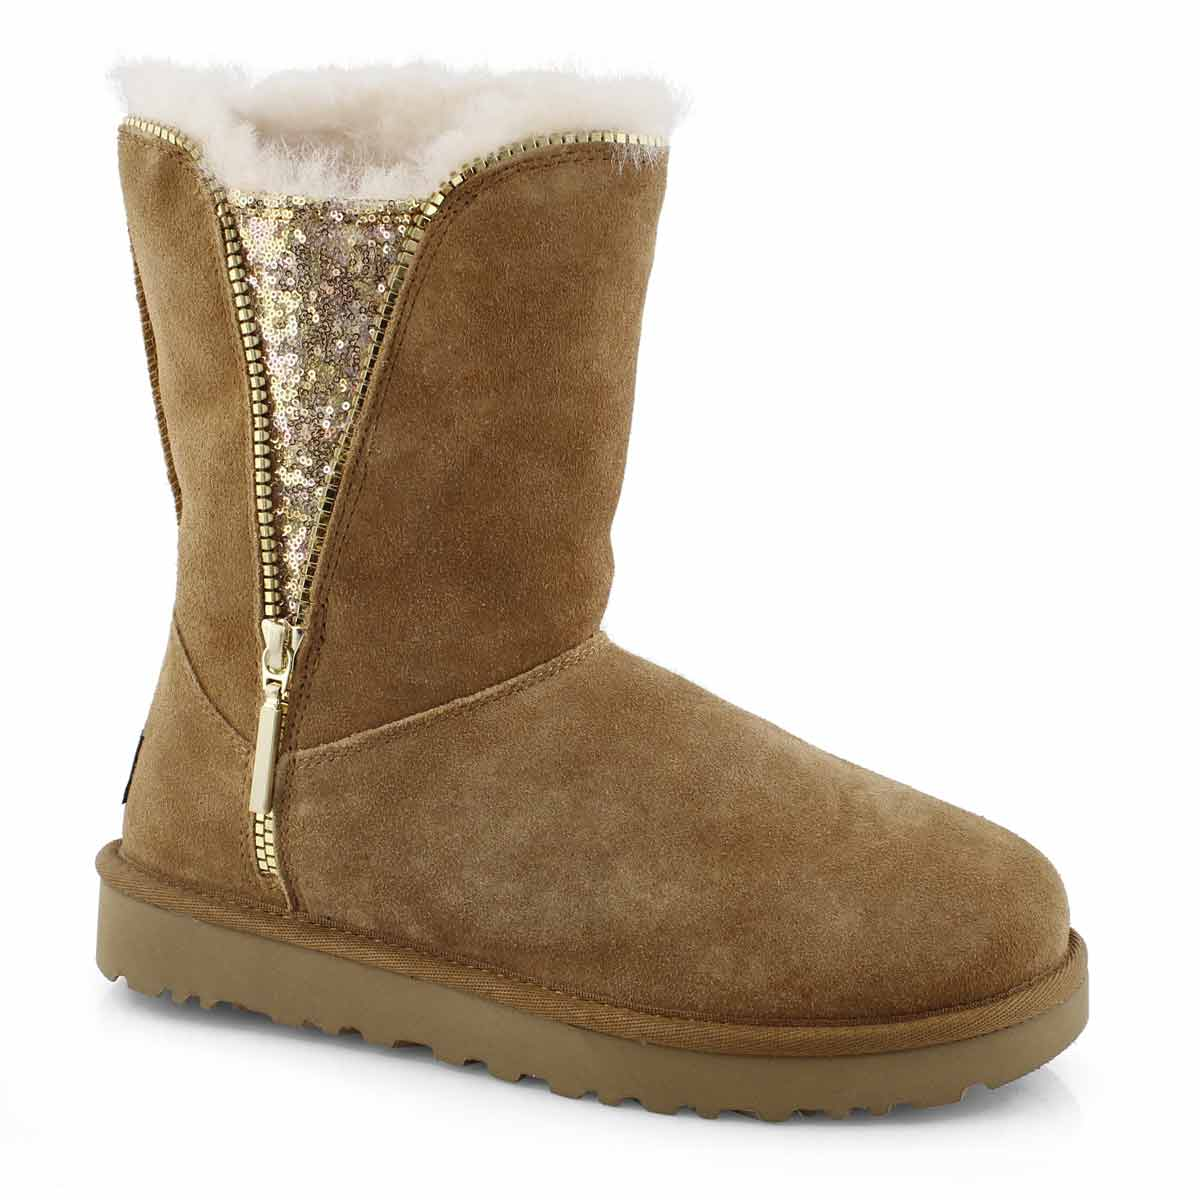 Lds Classic Zip chestnut sheepskin boot